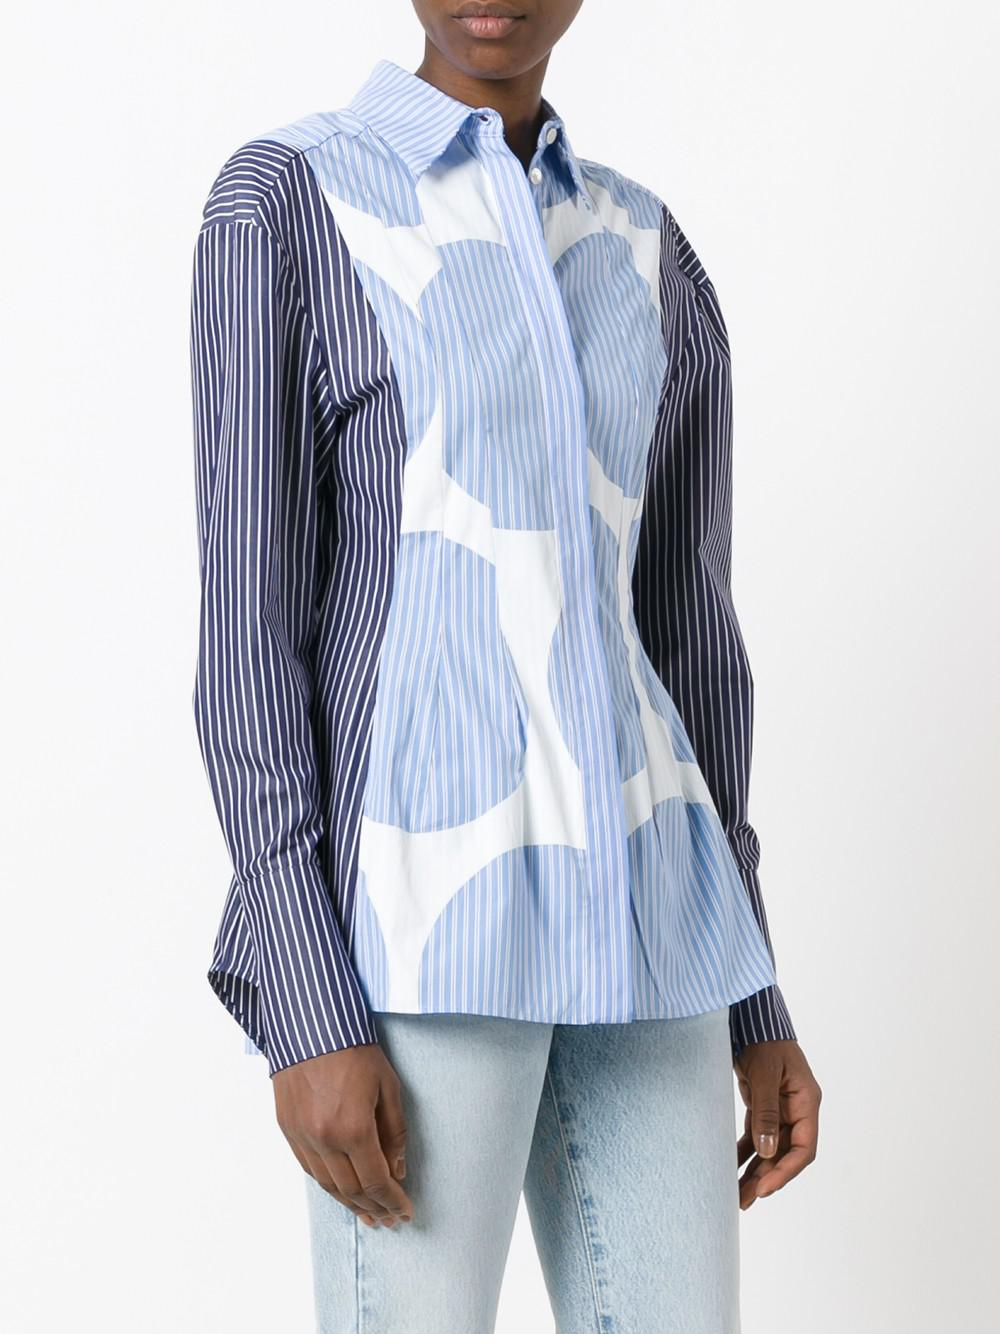 Intarsia Zoe shirt Stella McCartney Discount Perfect Discount Eastbay VFoLd